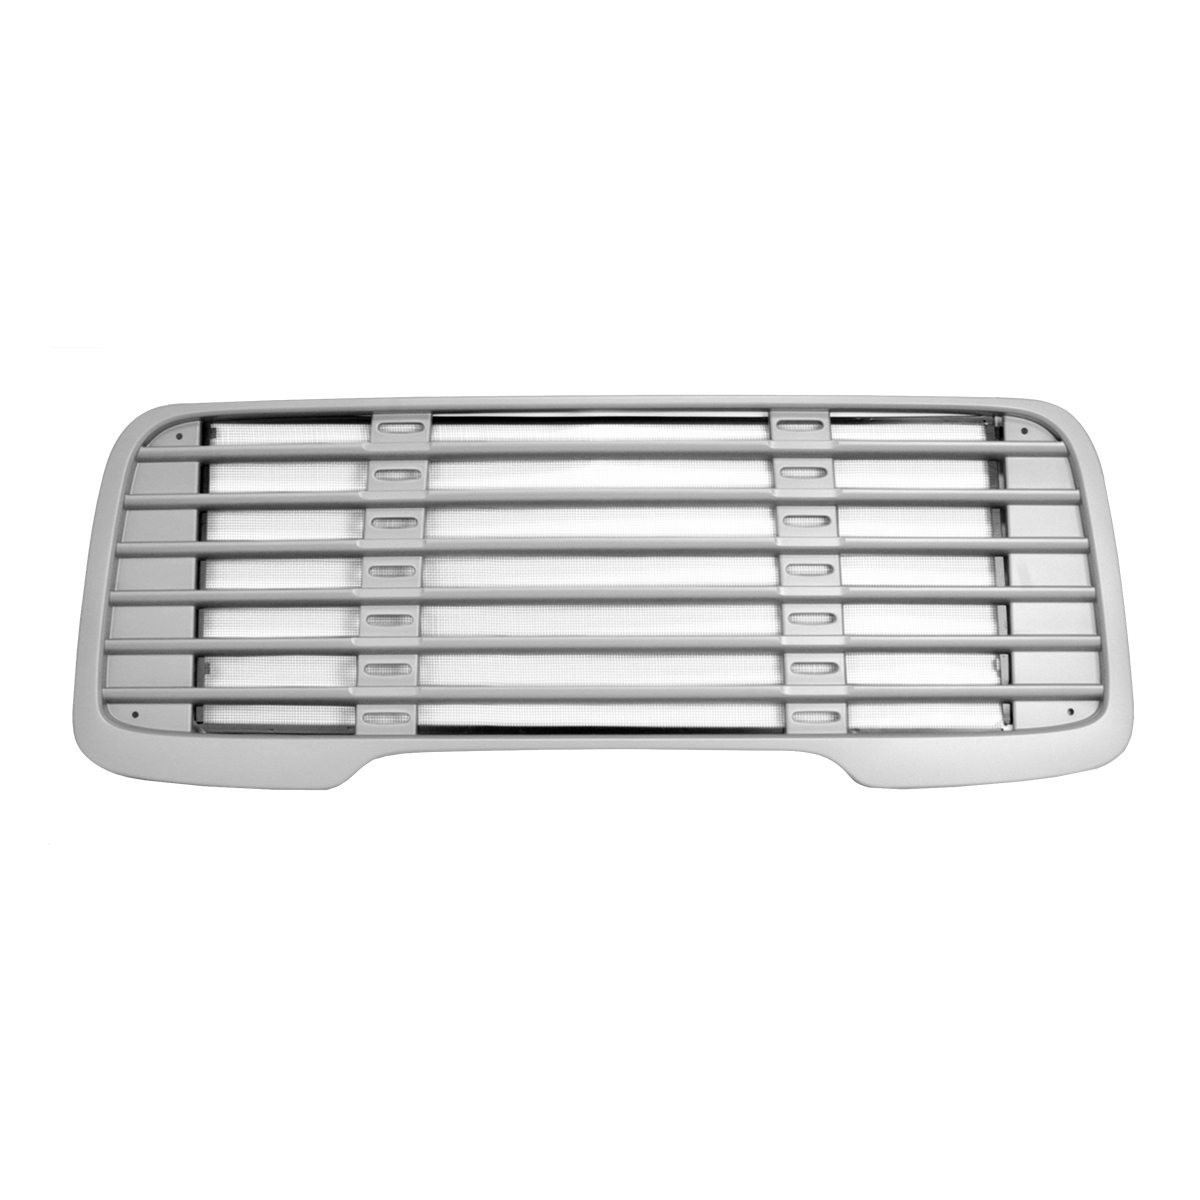 89306 Silver Painted Plastic Grille with Bug Screen for FL M2 Model